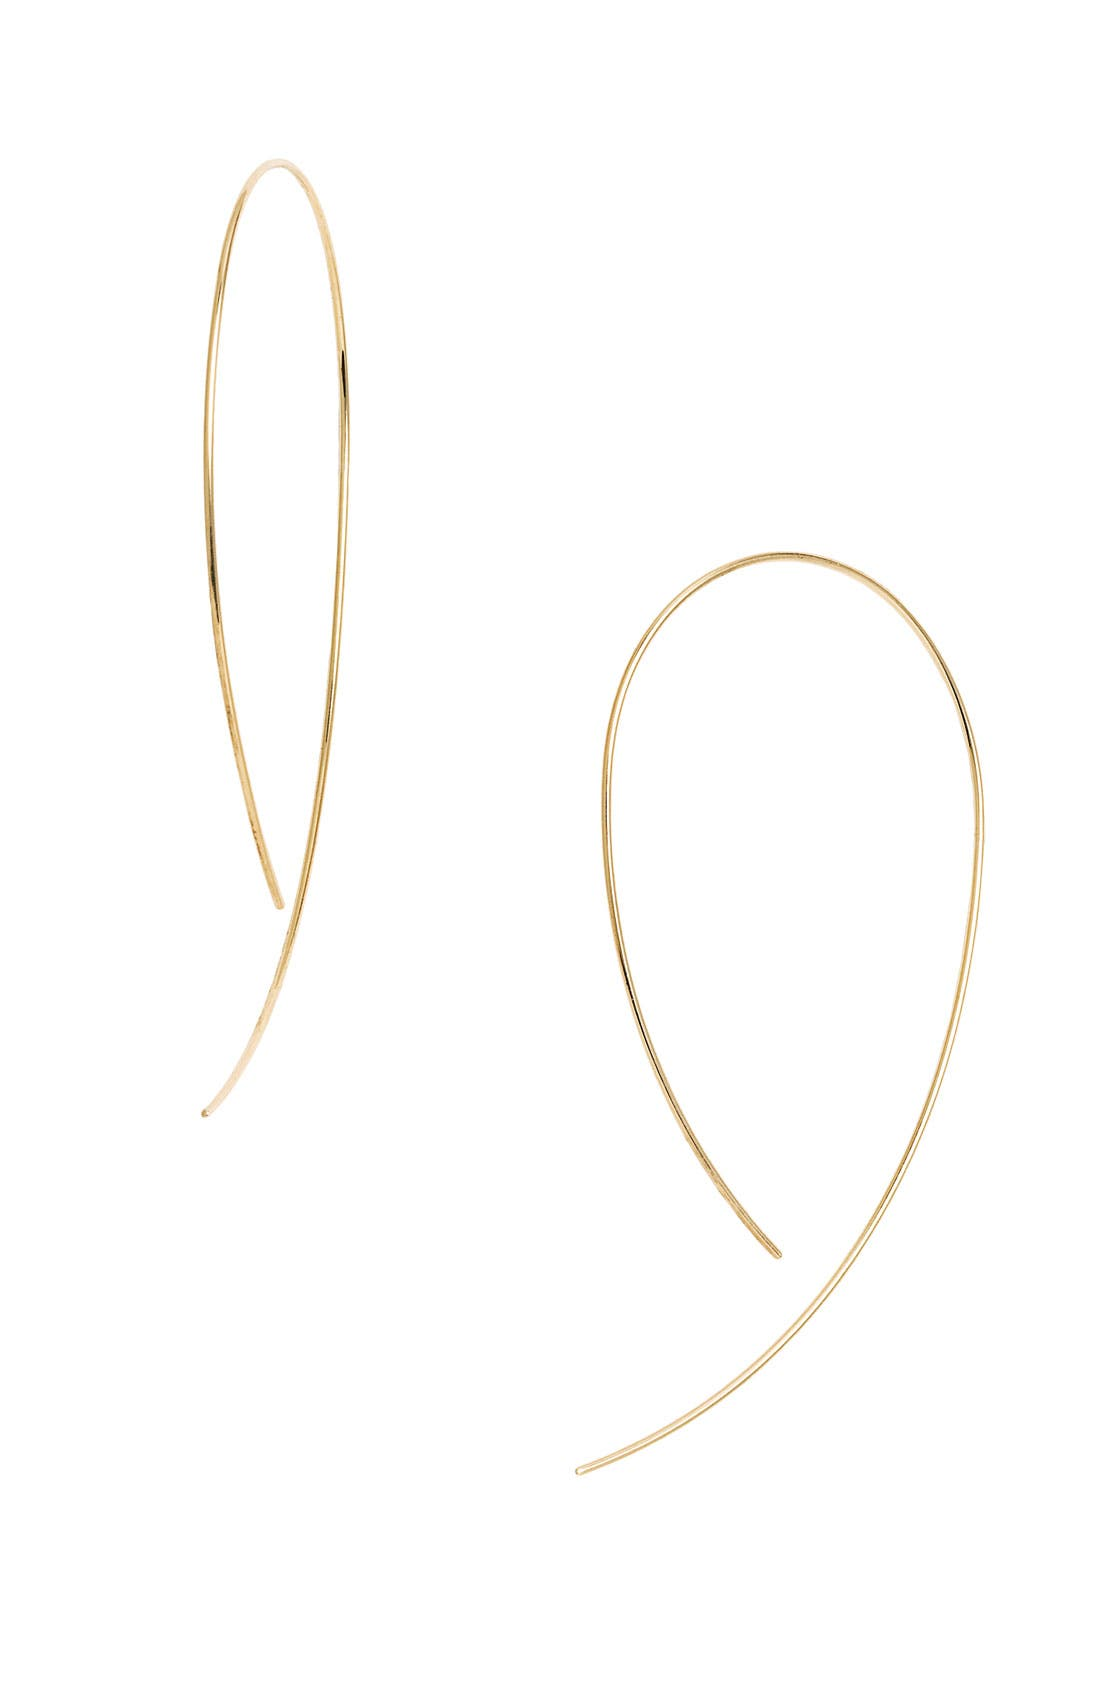 Lana Jewelry Hooked on Hoops with Diamonds 7h7qVpb